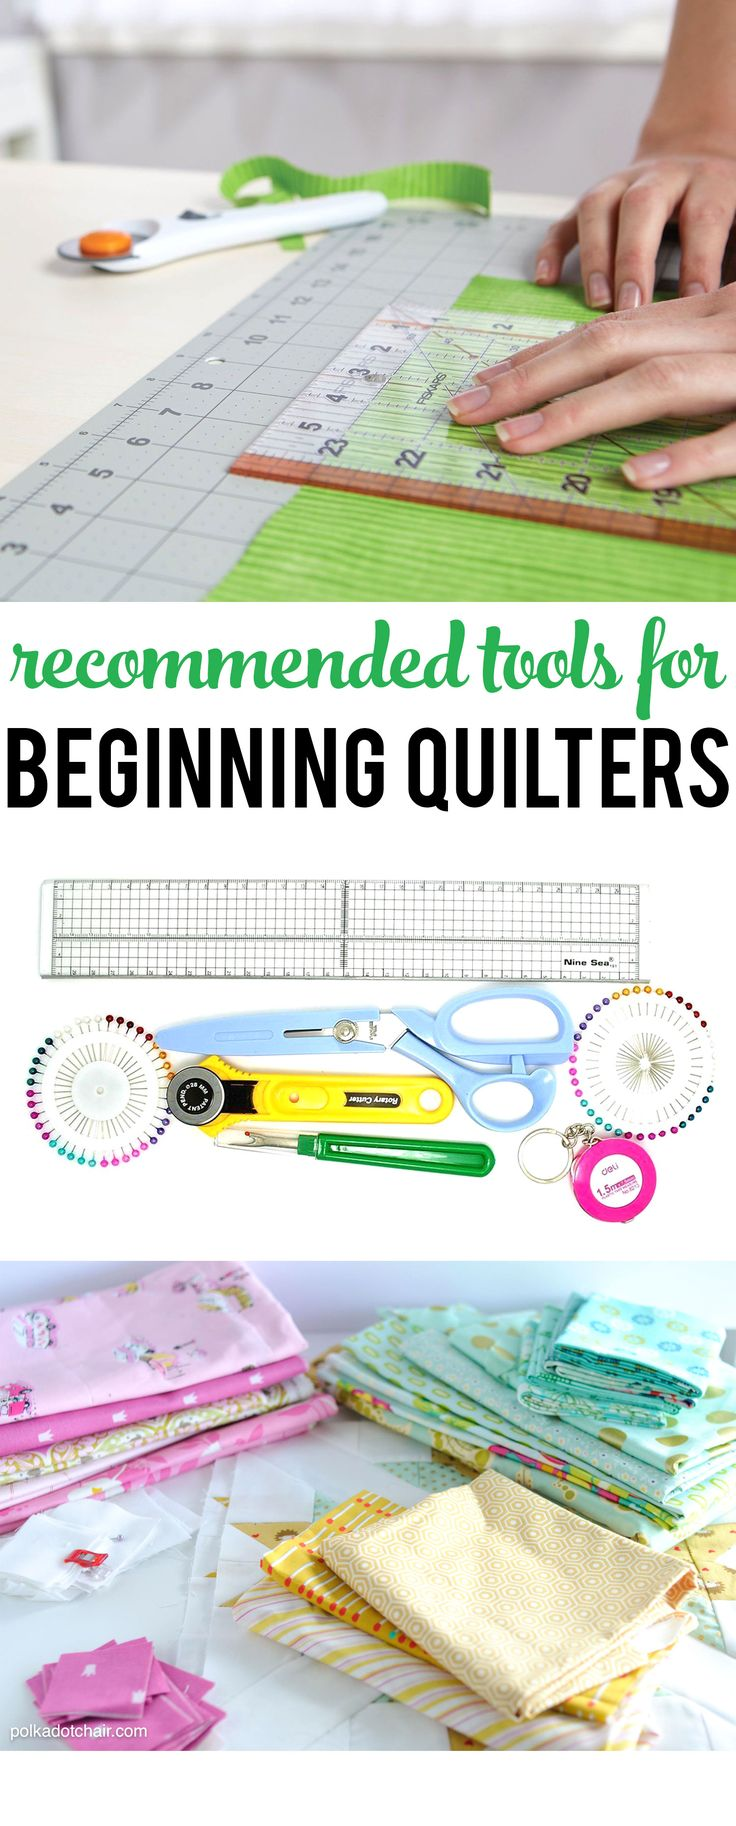 A great list of recommended tools for people who are just beginning to quilt. [spon]